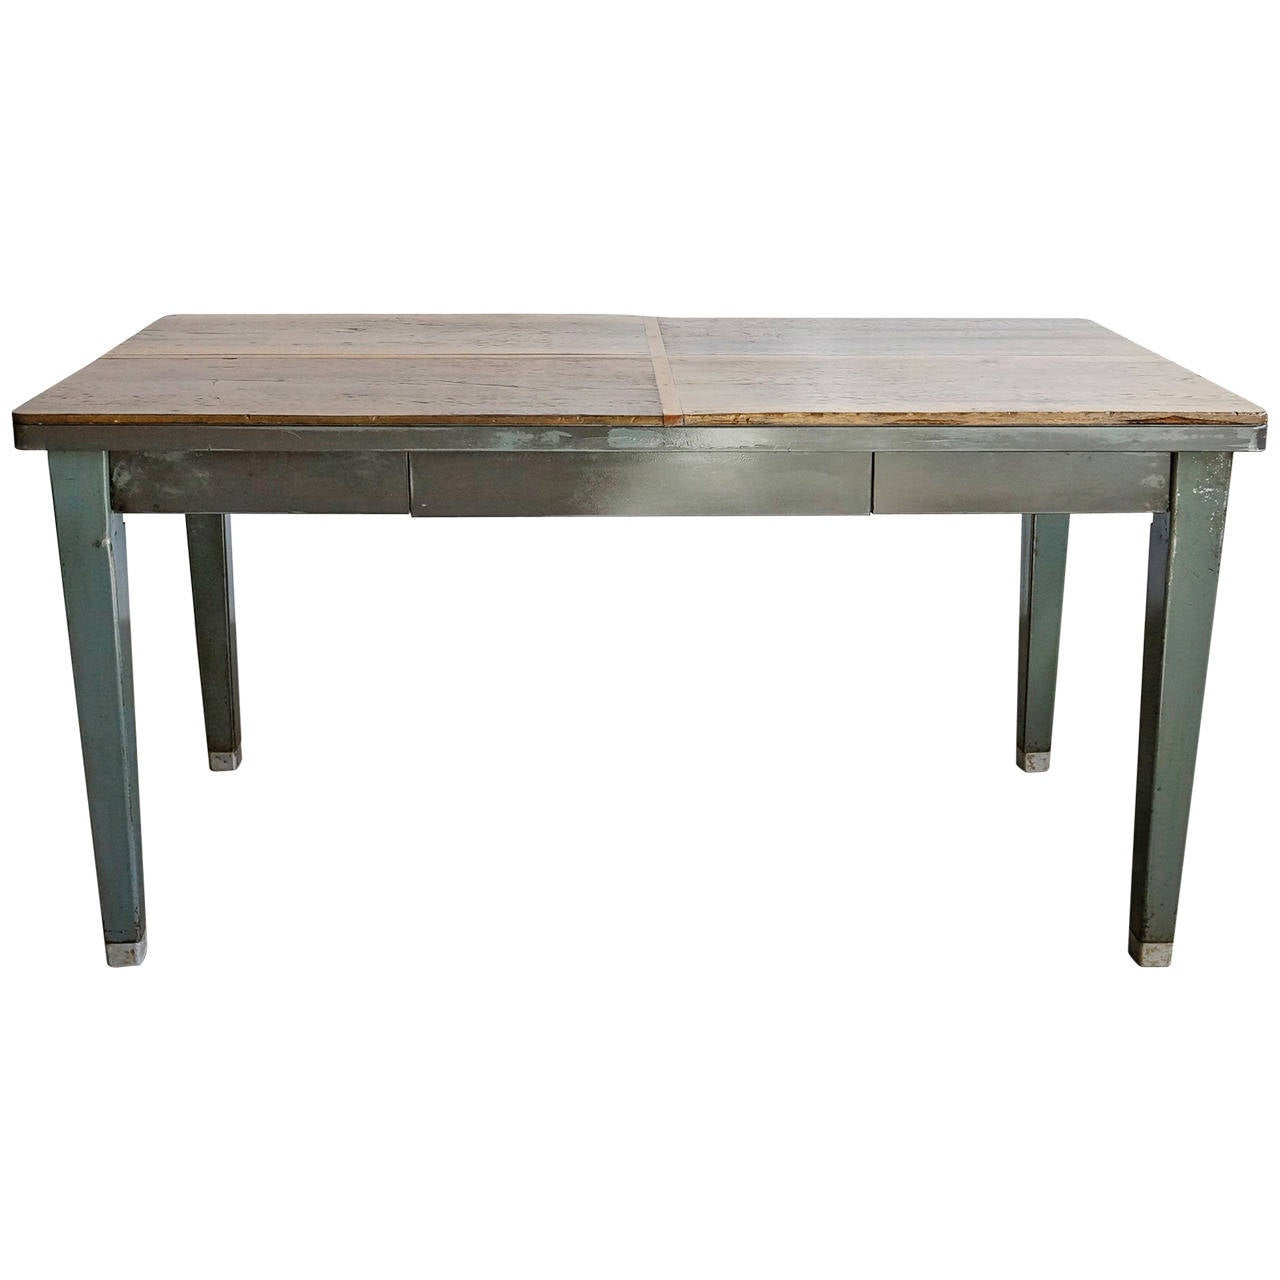 1940s steel tanker table with reclaimed wood top at 1stdibs for Metal desk with wood top